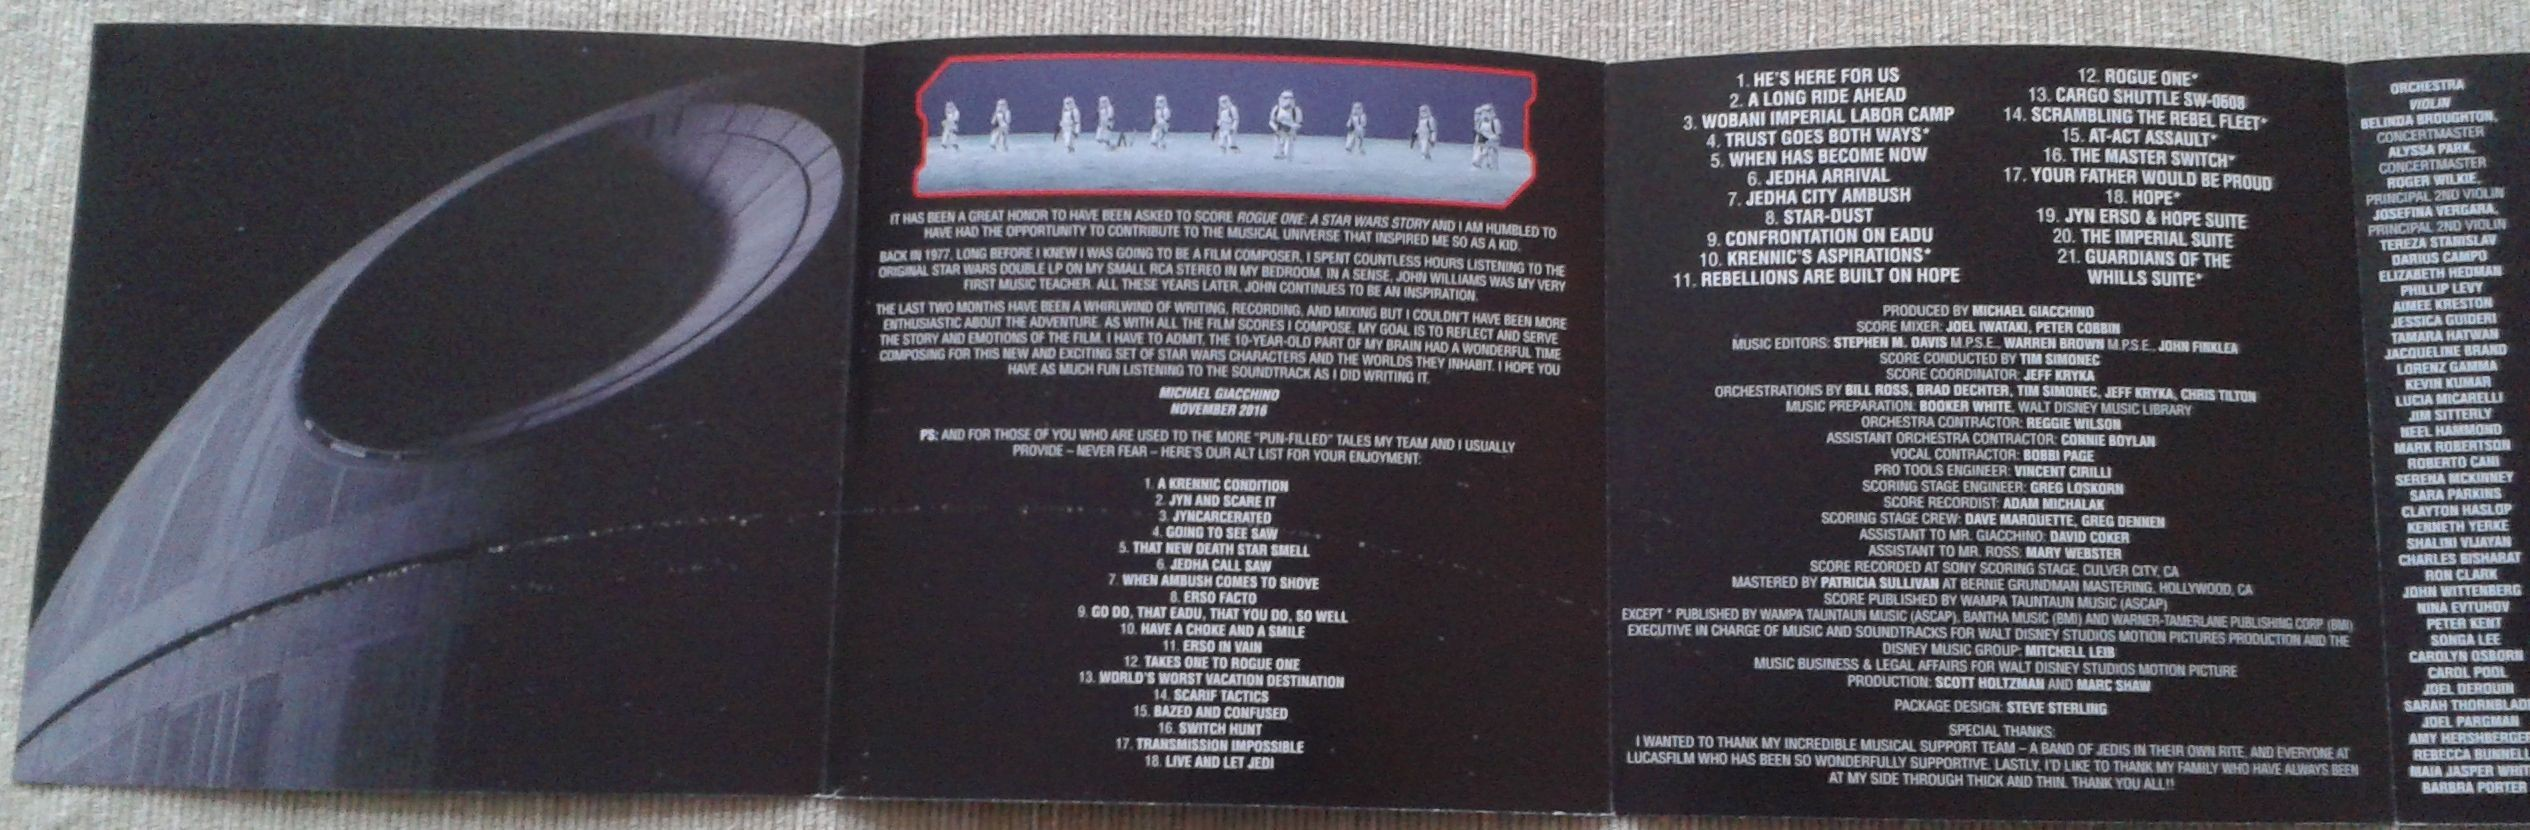 5. Rogue 1 SW booklet 1.jpg